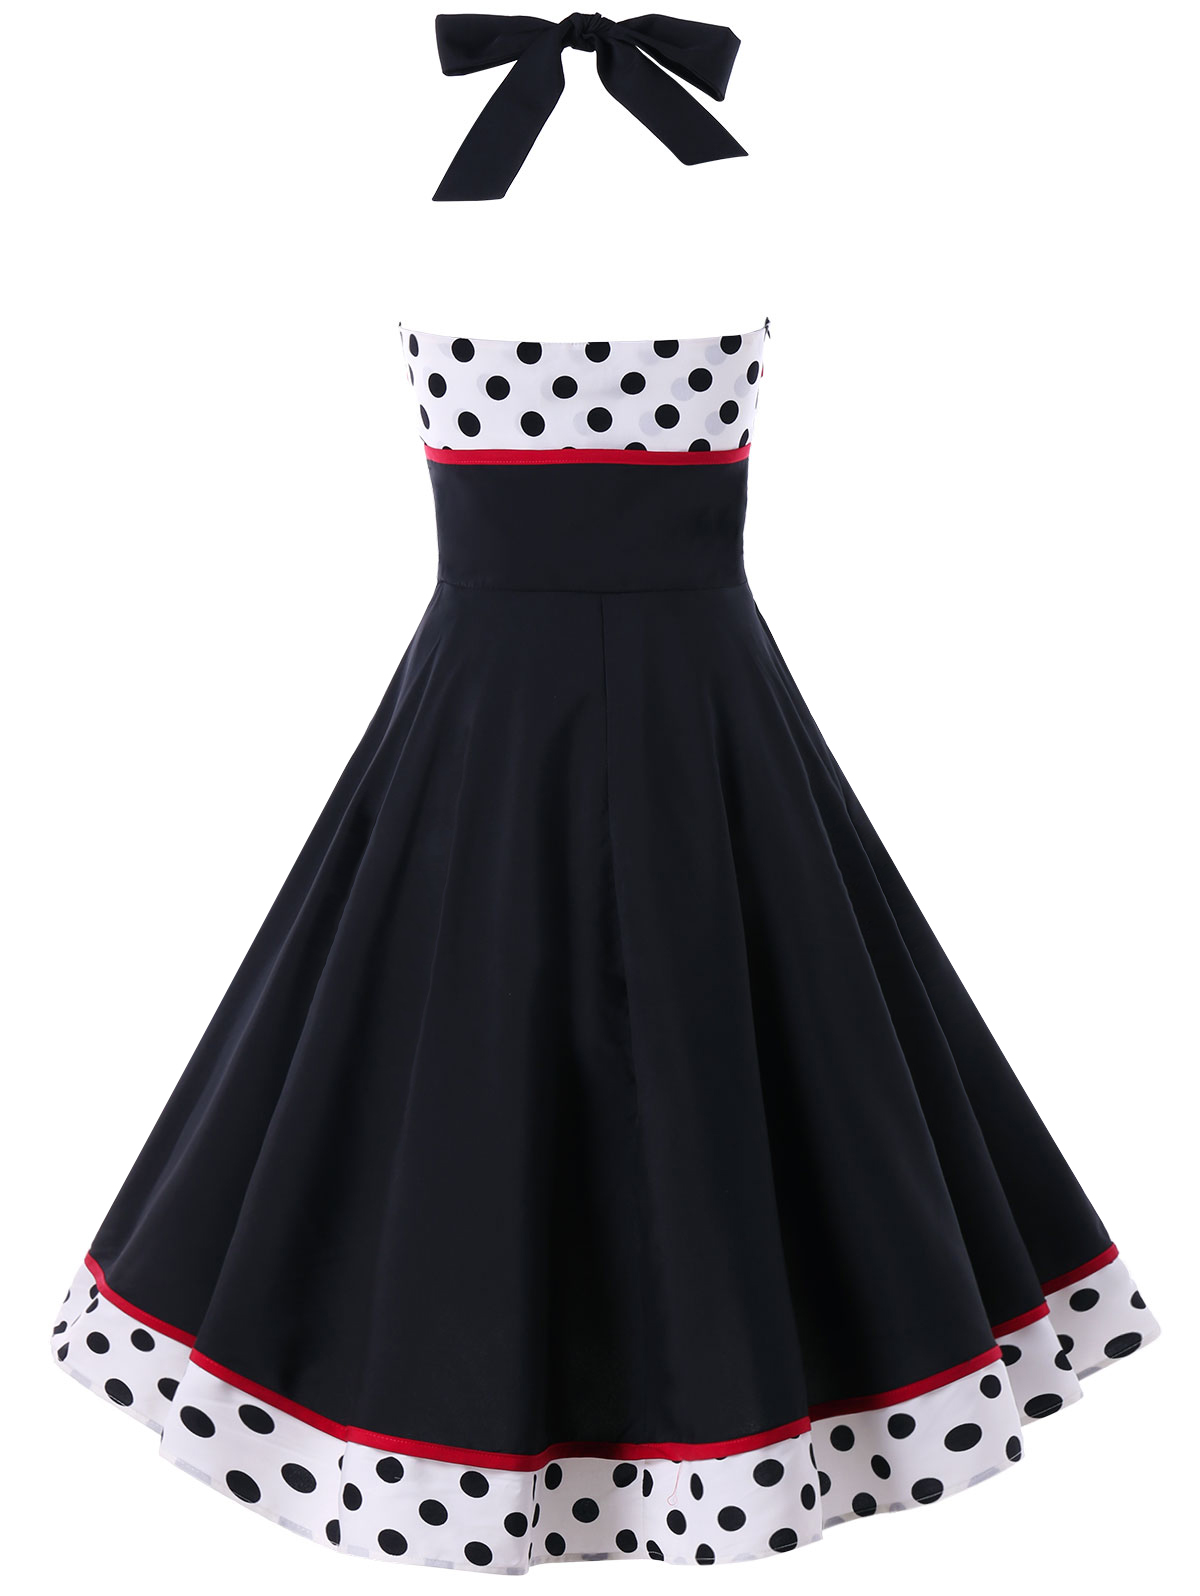 7ae825e3876e2 Kenancy Polka Dot Print Summer Women Vintage Dress Sexy Pin Up Halter Retro  Dress Rockabilly Swing Vestidos 1960s Party Dress